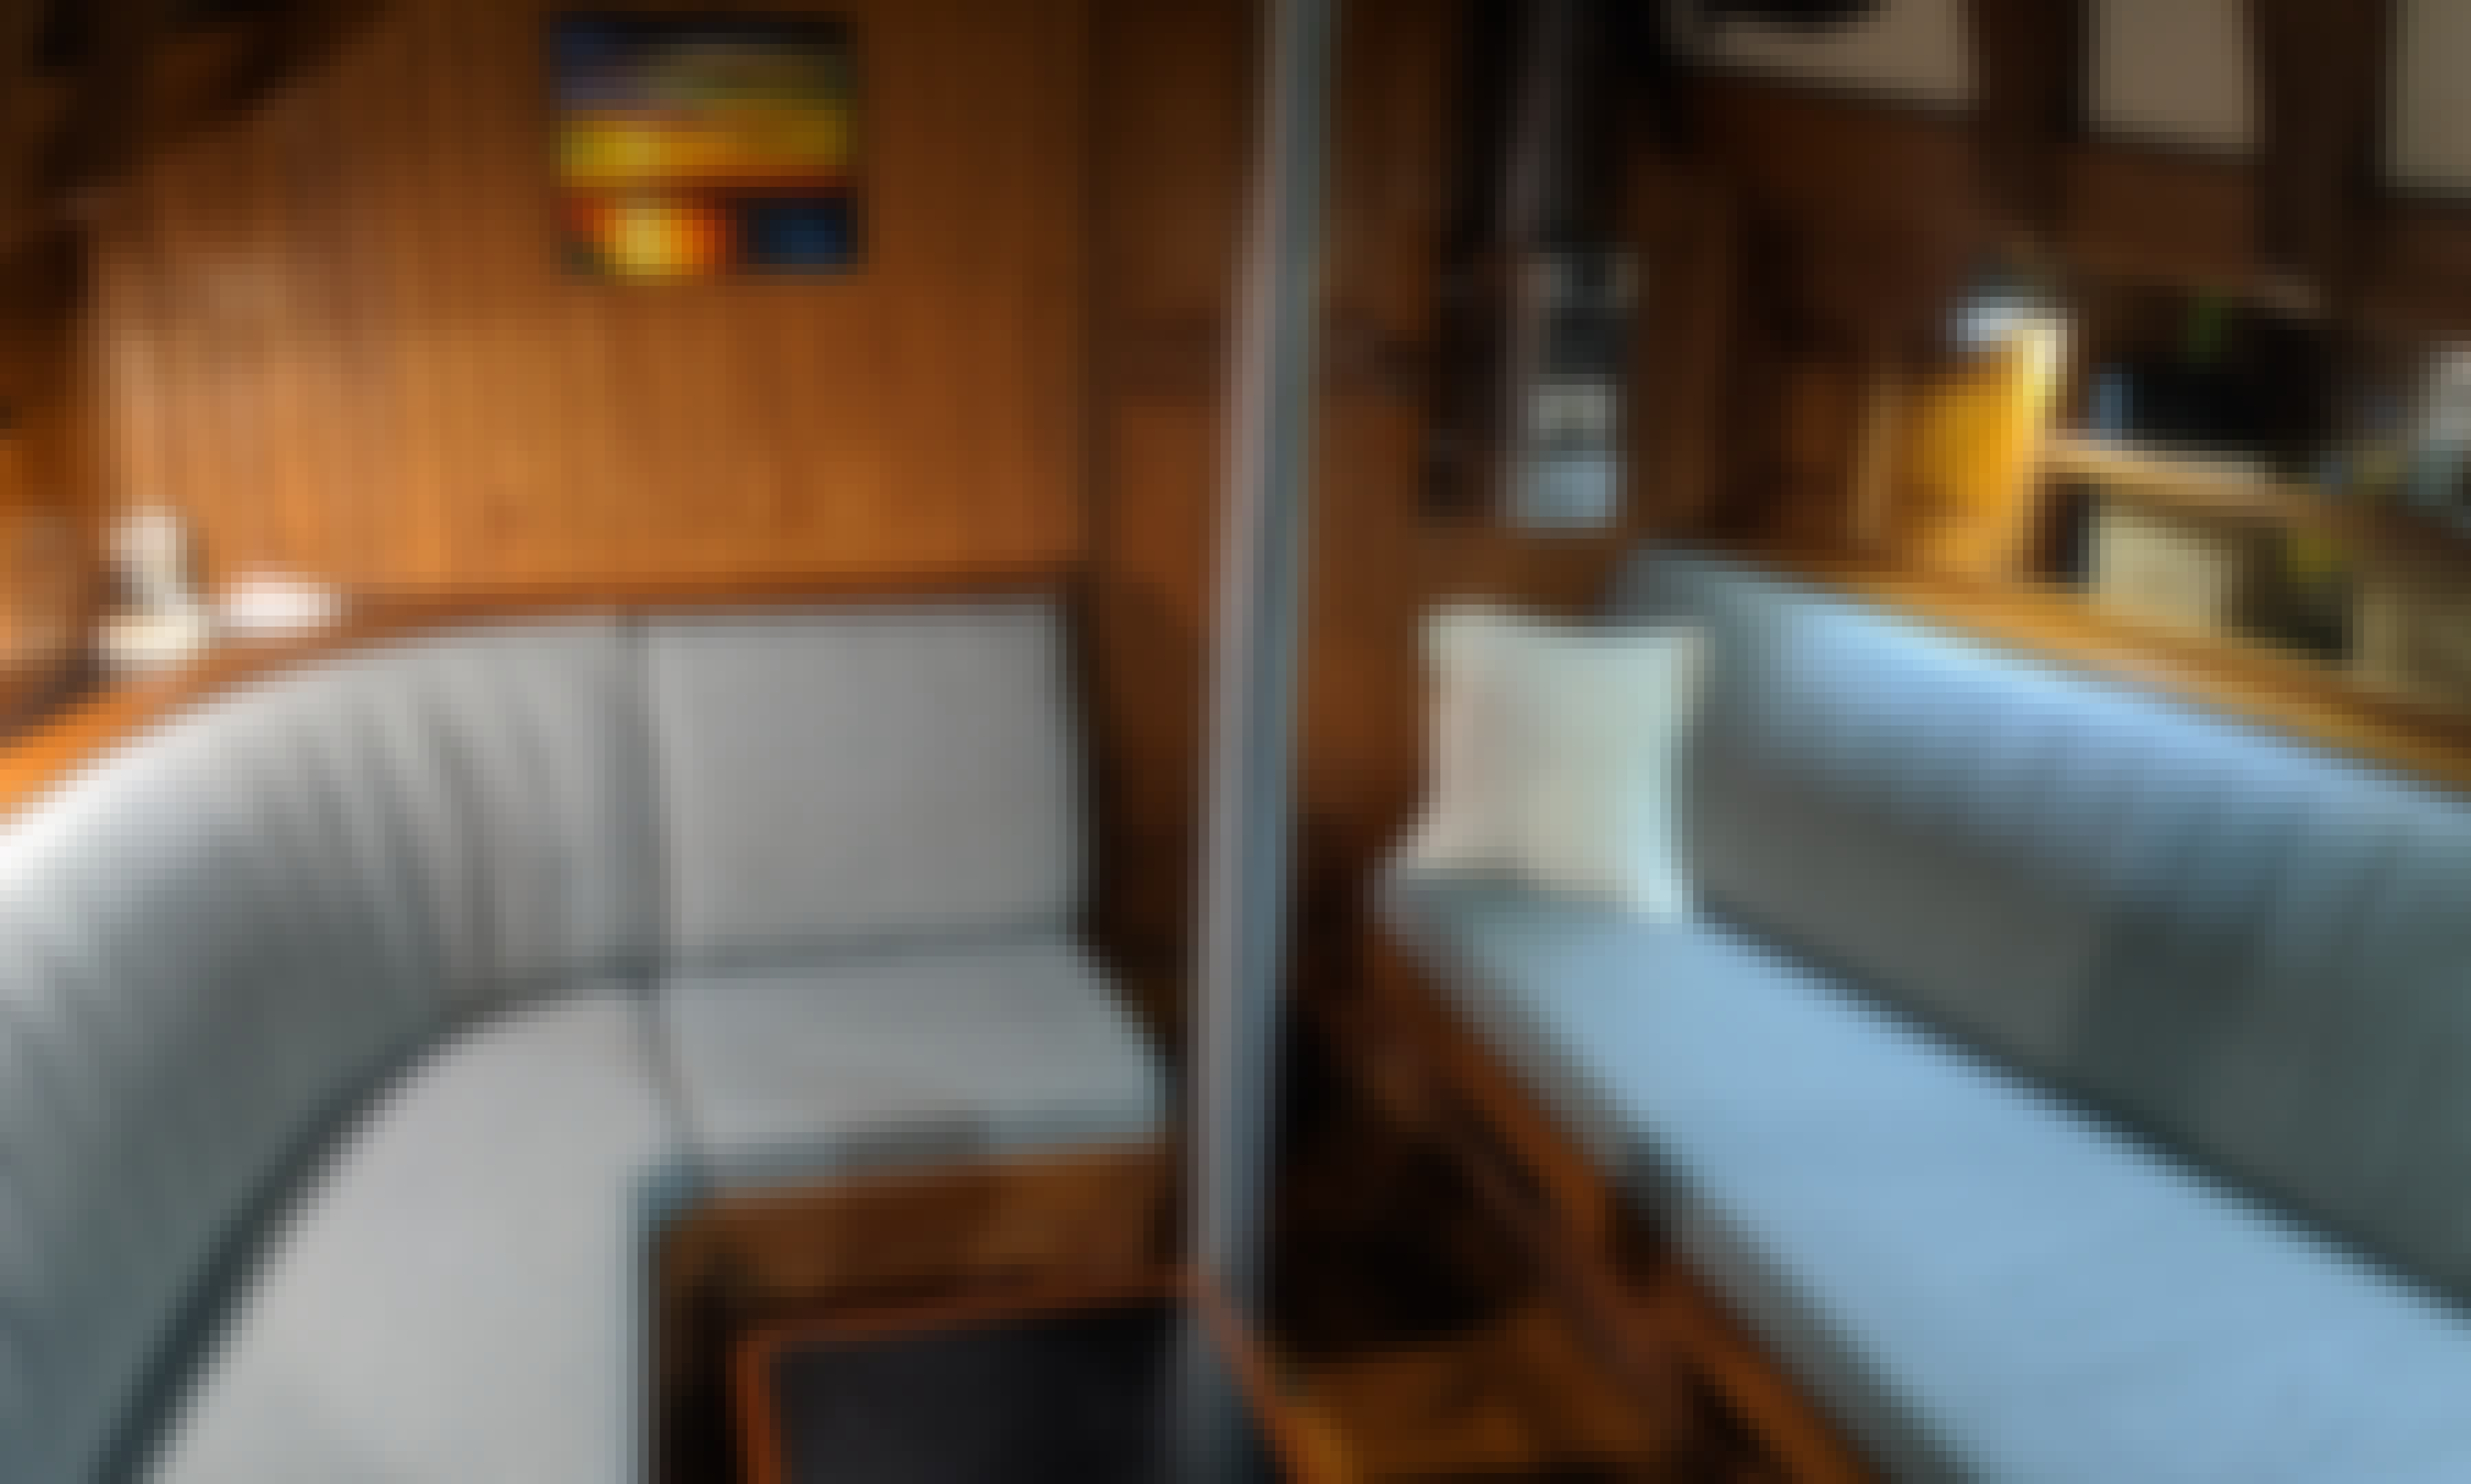 Sailing Adventure for 4 People onboard 38' Hans Christian Sailboat in La Paz